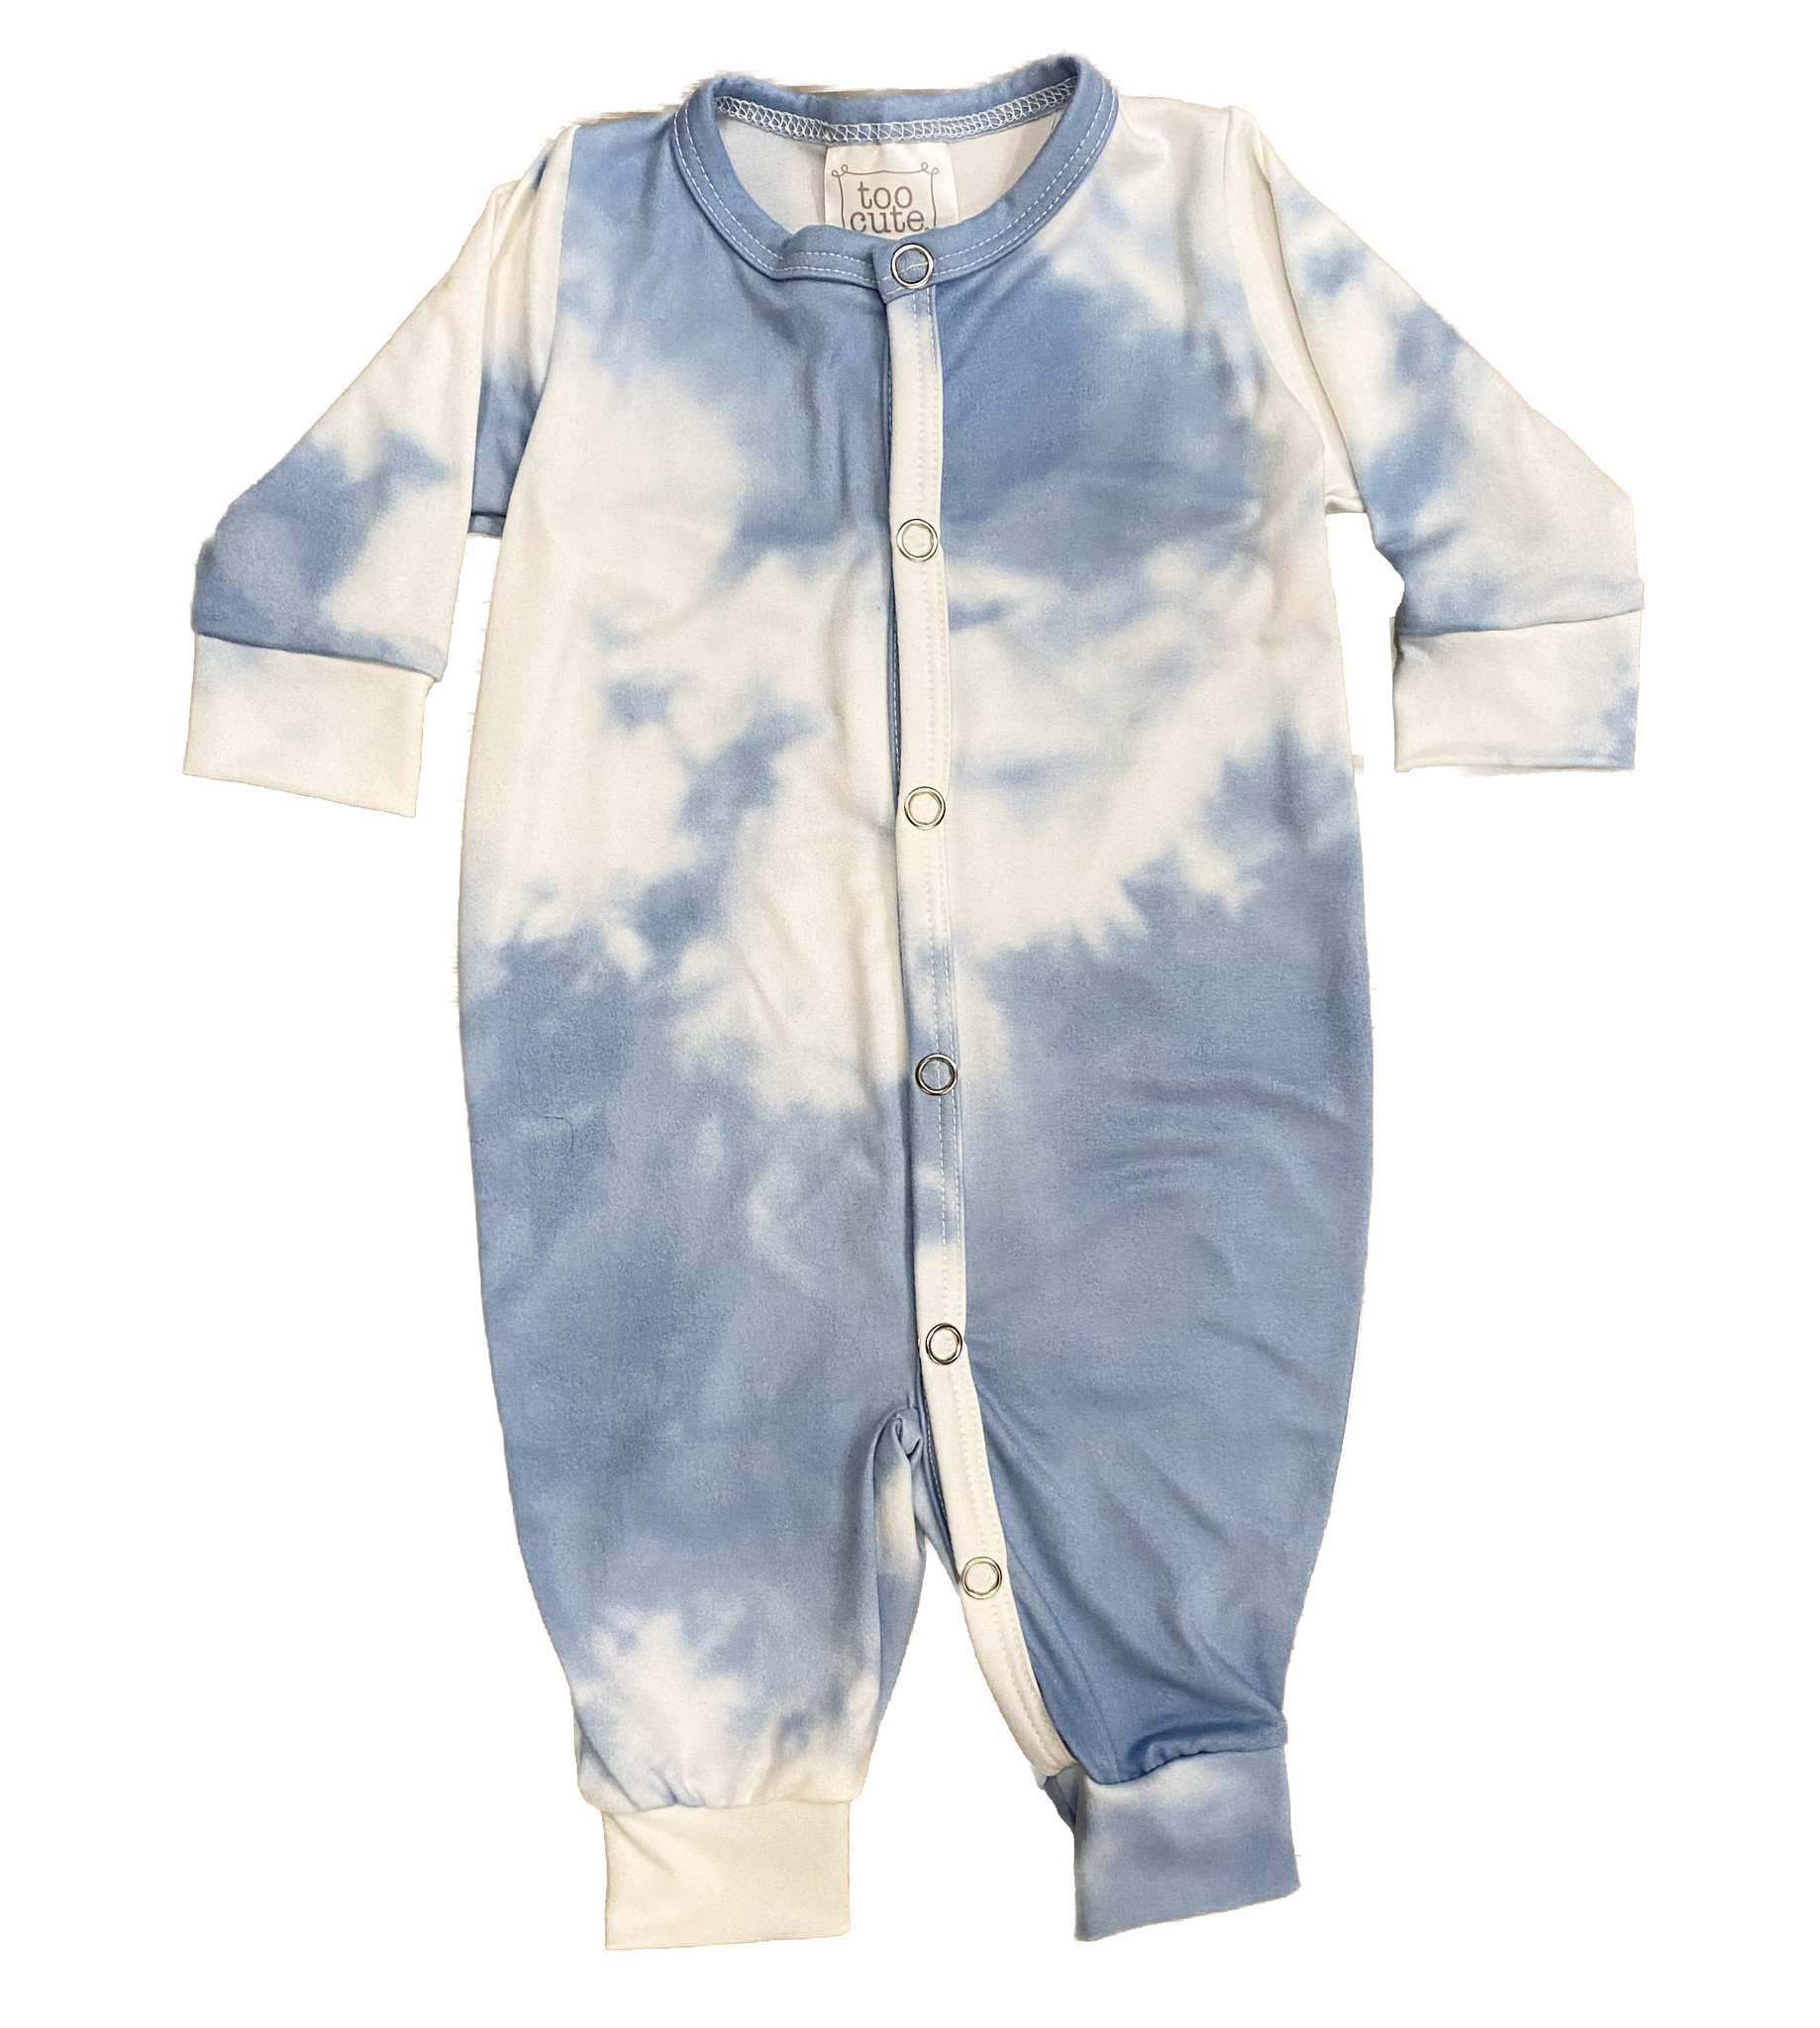 Too Cute Light Blue Tie Dye Outfit